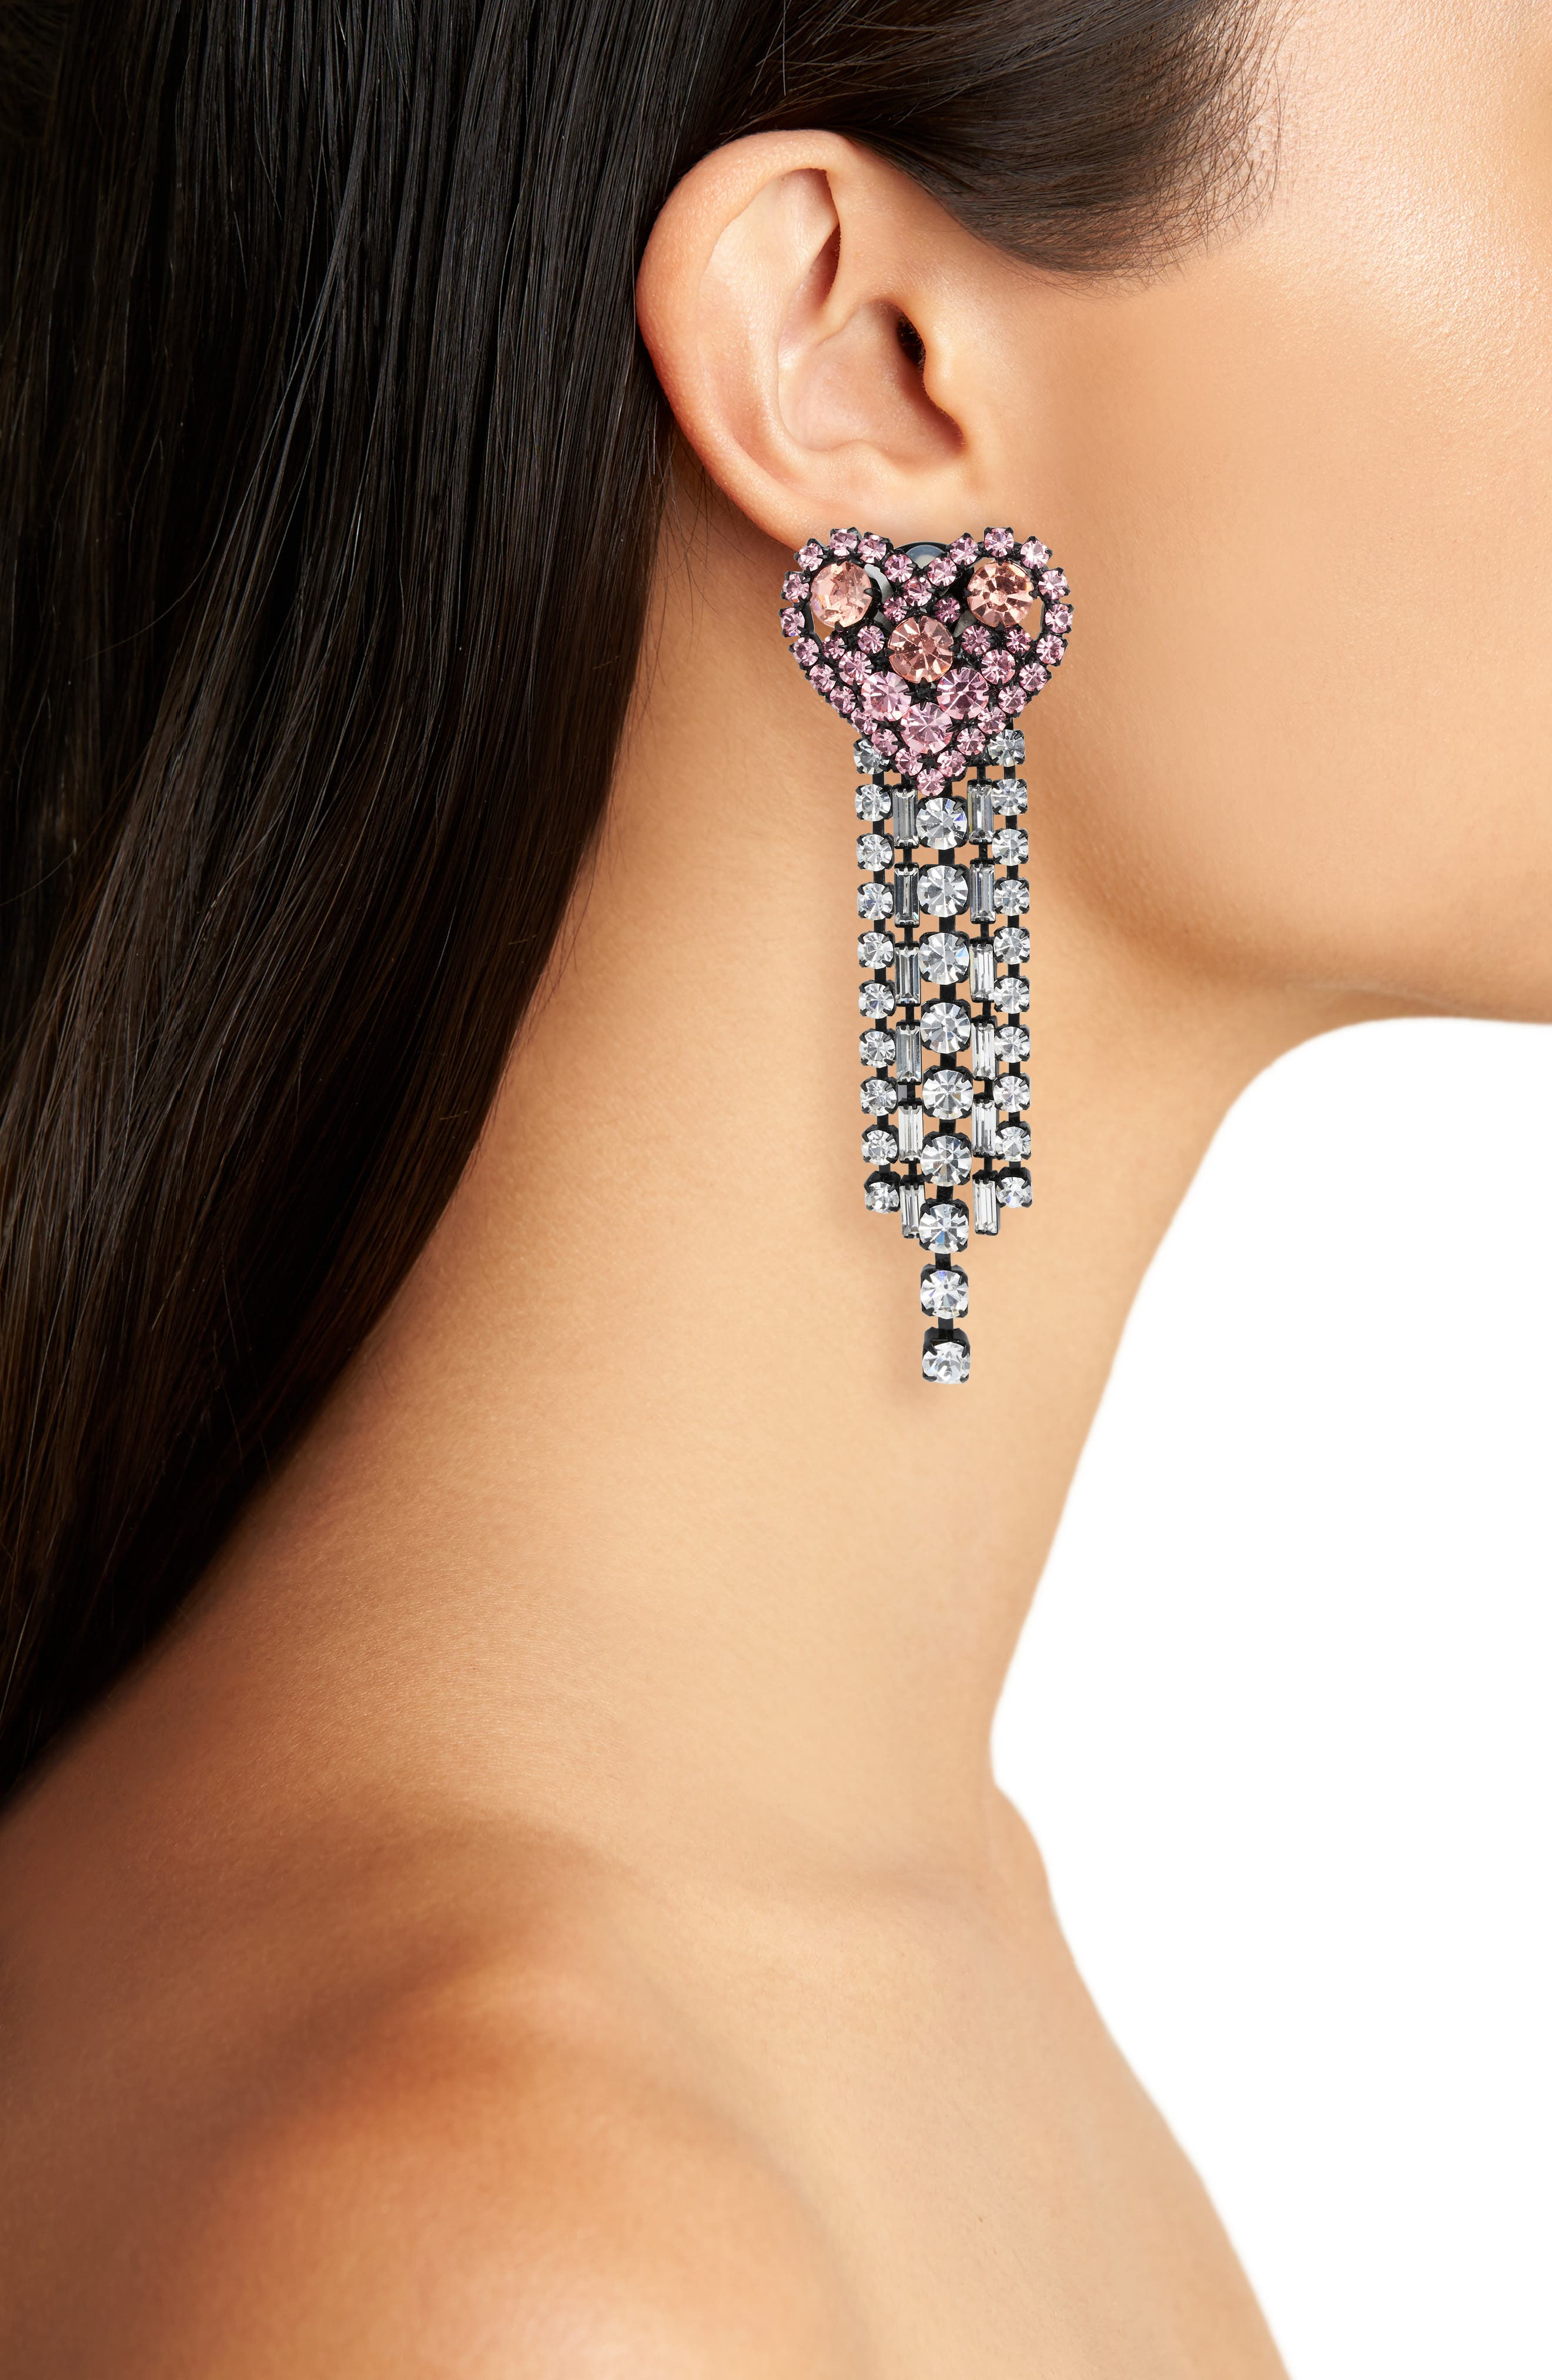 Heart Fall Crystal Earrings,                             Alternate thumbnail 2, color,                             Pink/ Clear